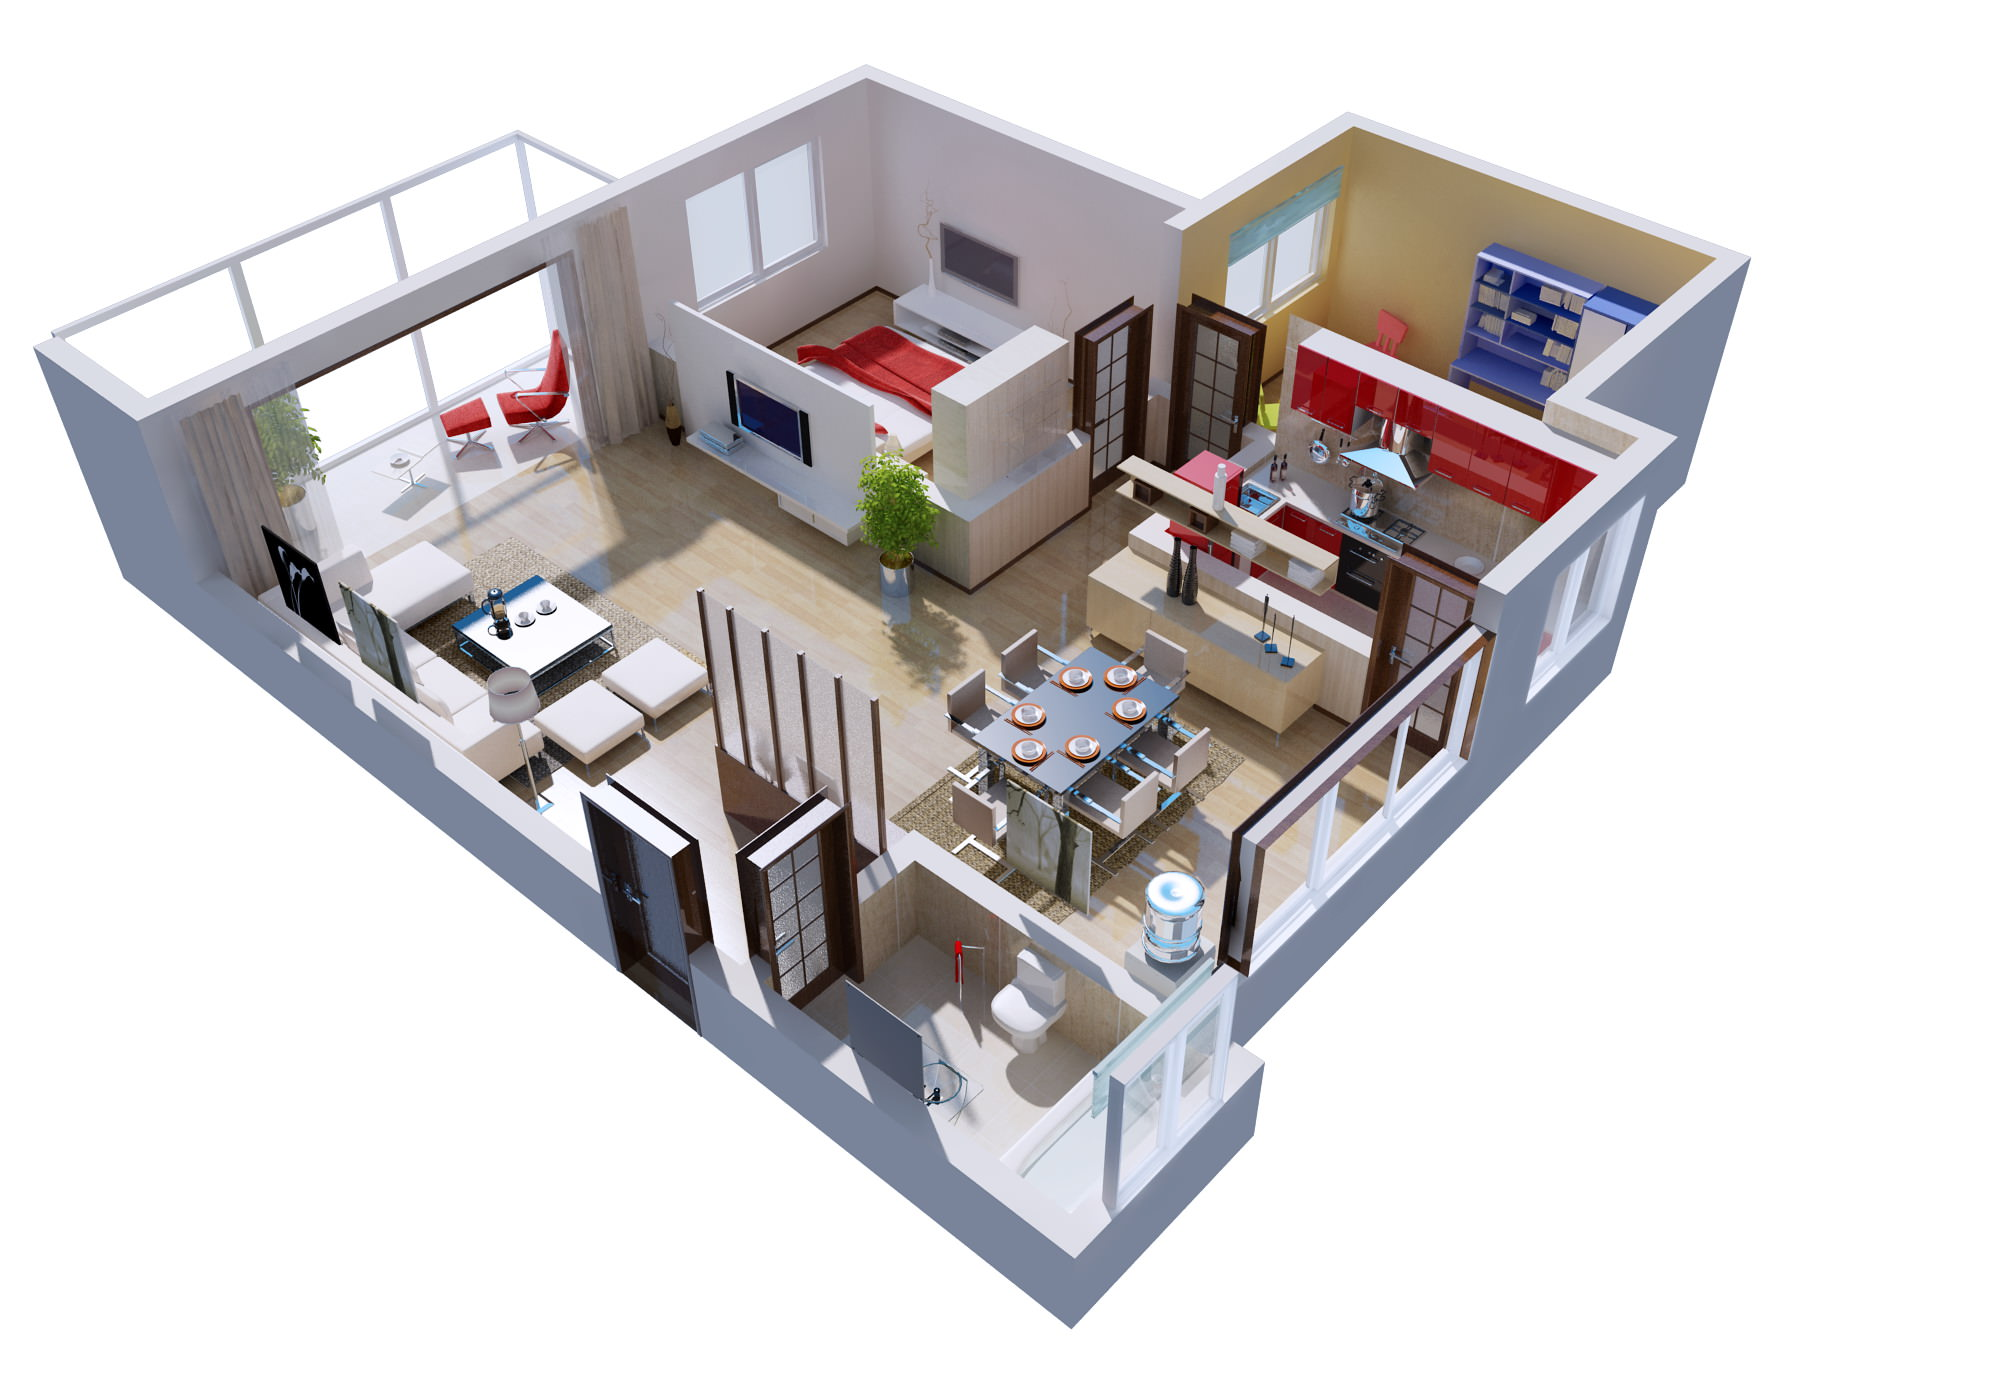 Best Kitchen Gallery: Posh House Interior 3d Cgtrader of 3d Model Home Design on rachelxblog.com